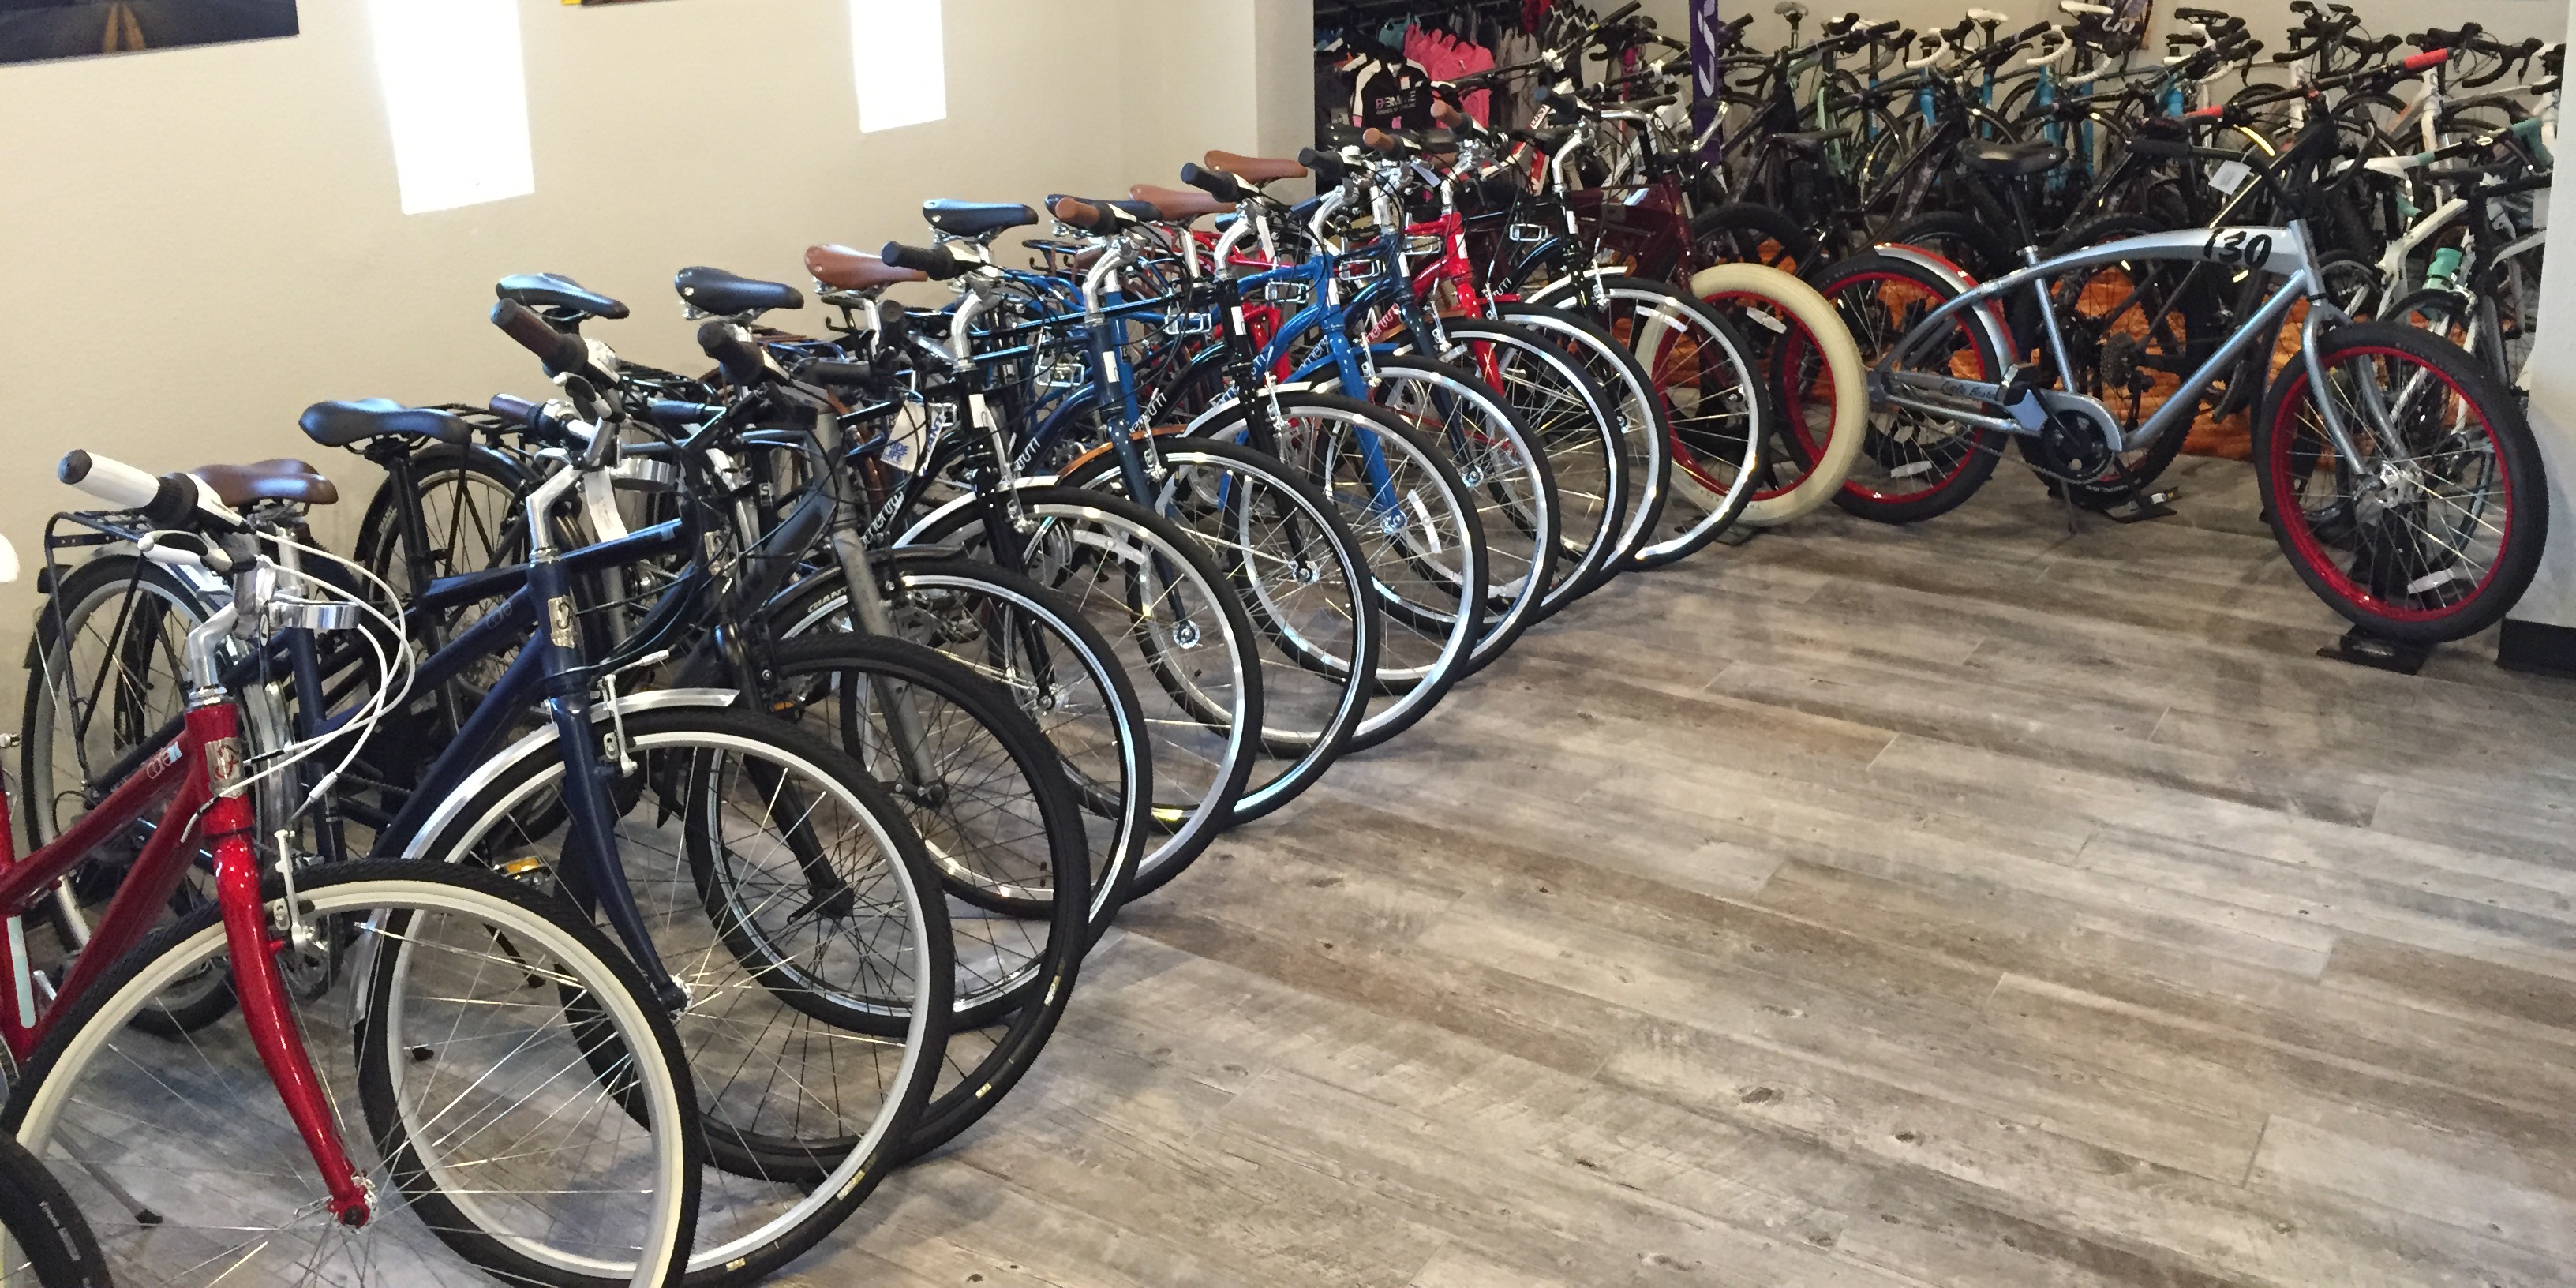 Lineup of bikes at The Velo